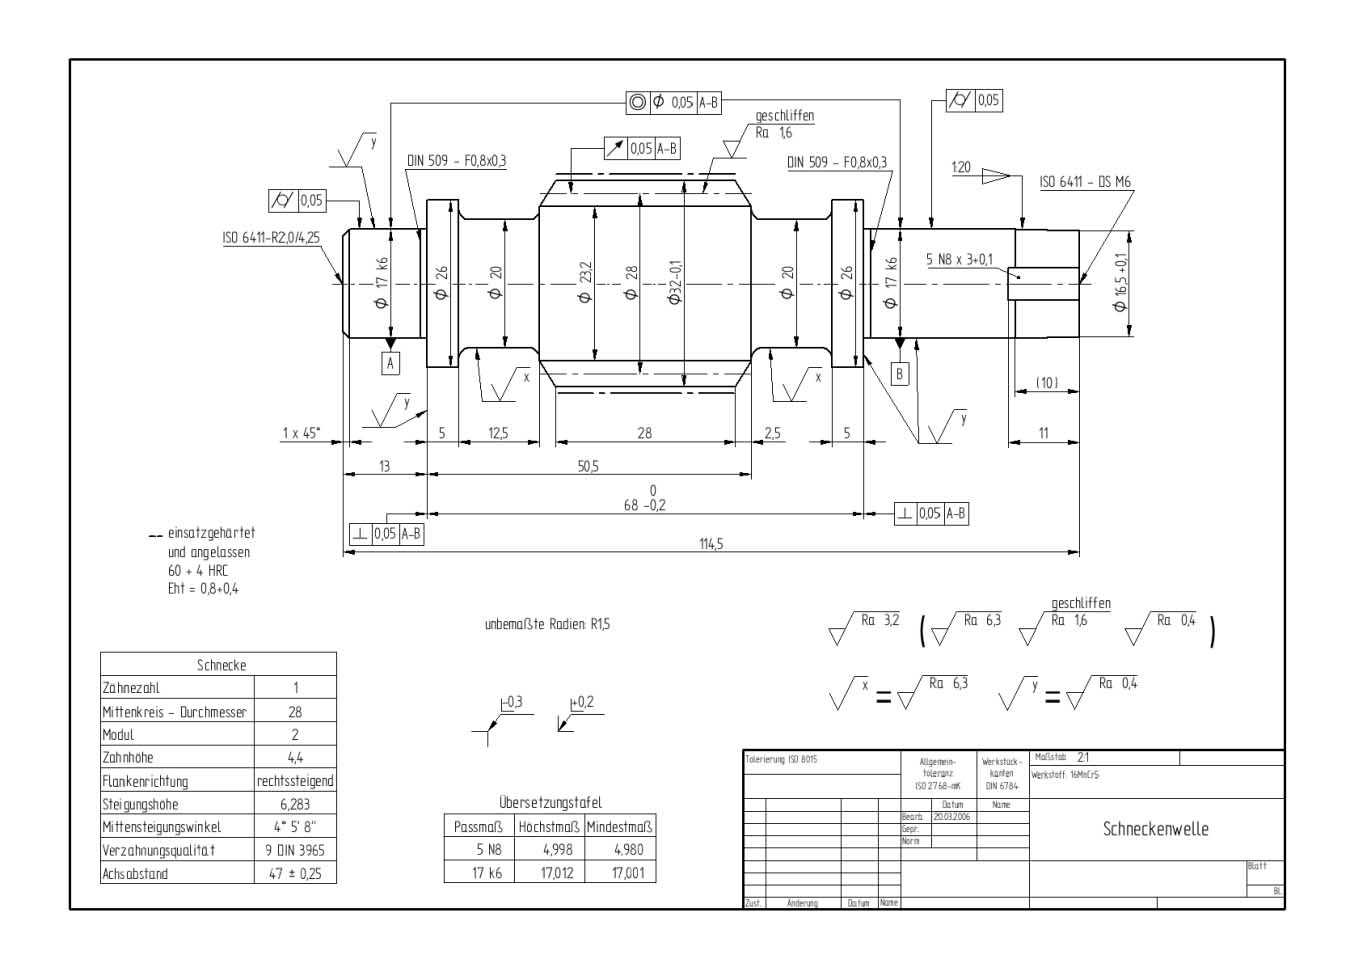 Autocad Mechanical Drawings Pdf in addition 10rz970 additionally Types Of Neckline 1832 additionally Review002 further 229 Convert Hand Drawn Floor Plans To Cad Pdf. on basic mechanical engineering drawing